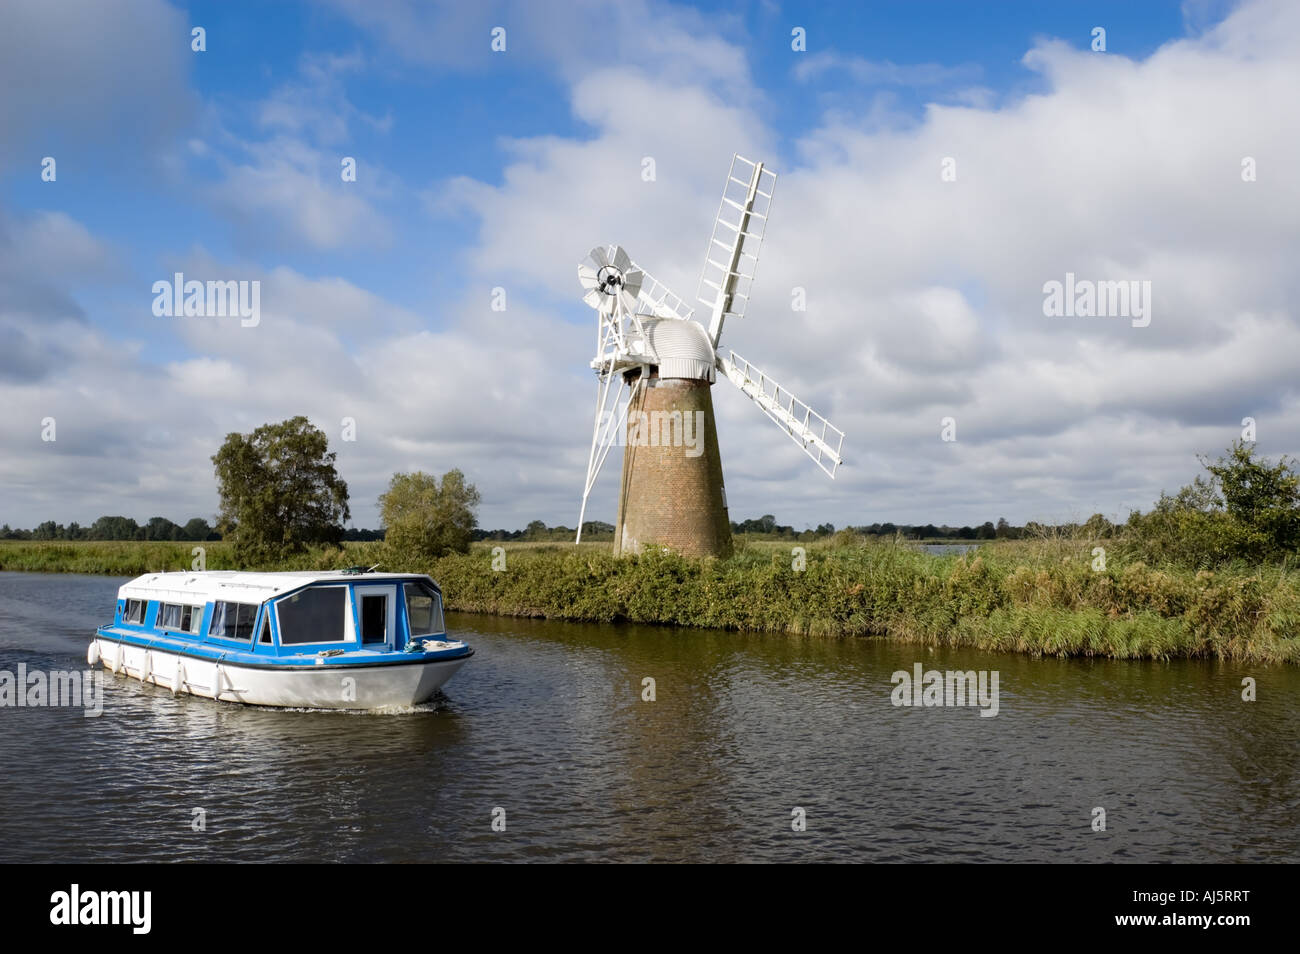 Blue boat passes Turf Fen Windpump on the River Ant, How Hill, Norfolk Broads, East Anglia, England, UKStock Photo